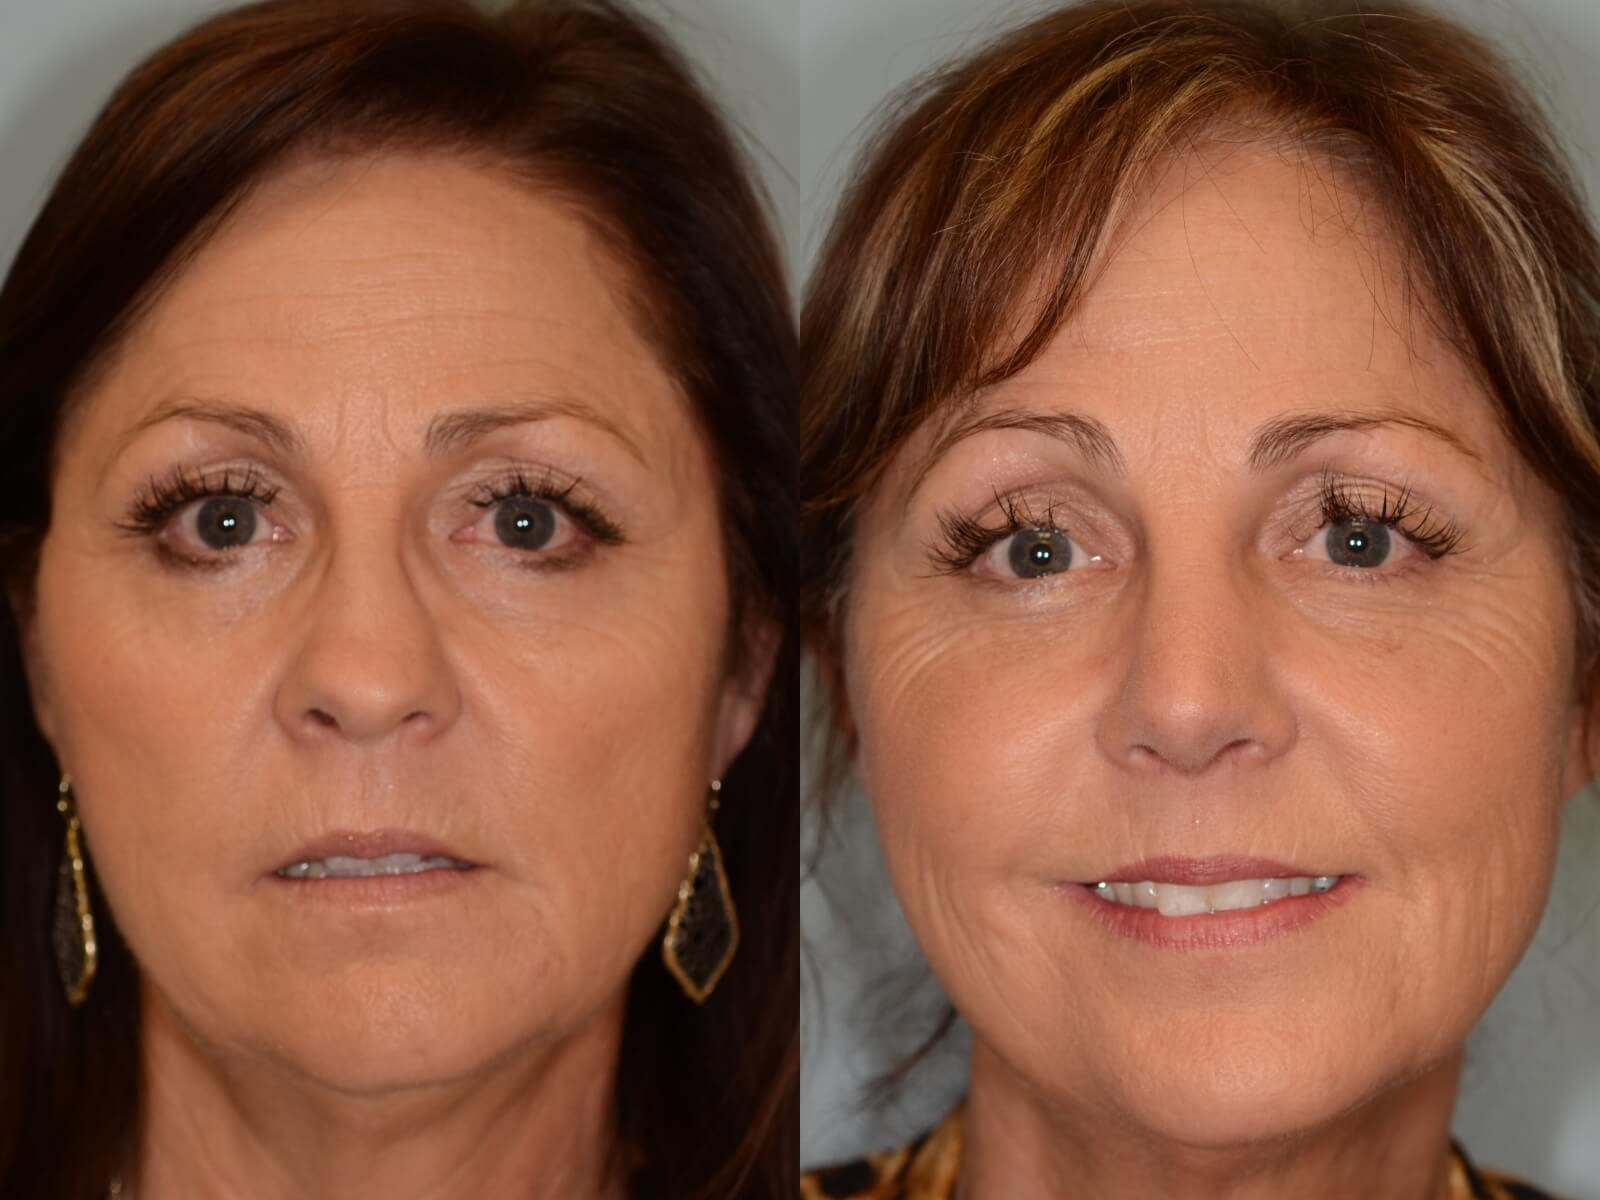 Nasal Valve Repair Rhinoplasty Before and After